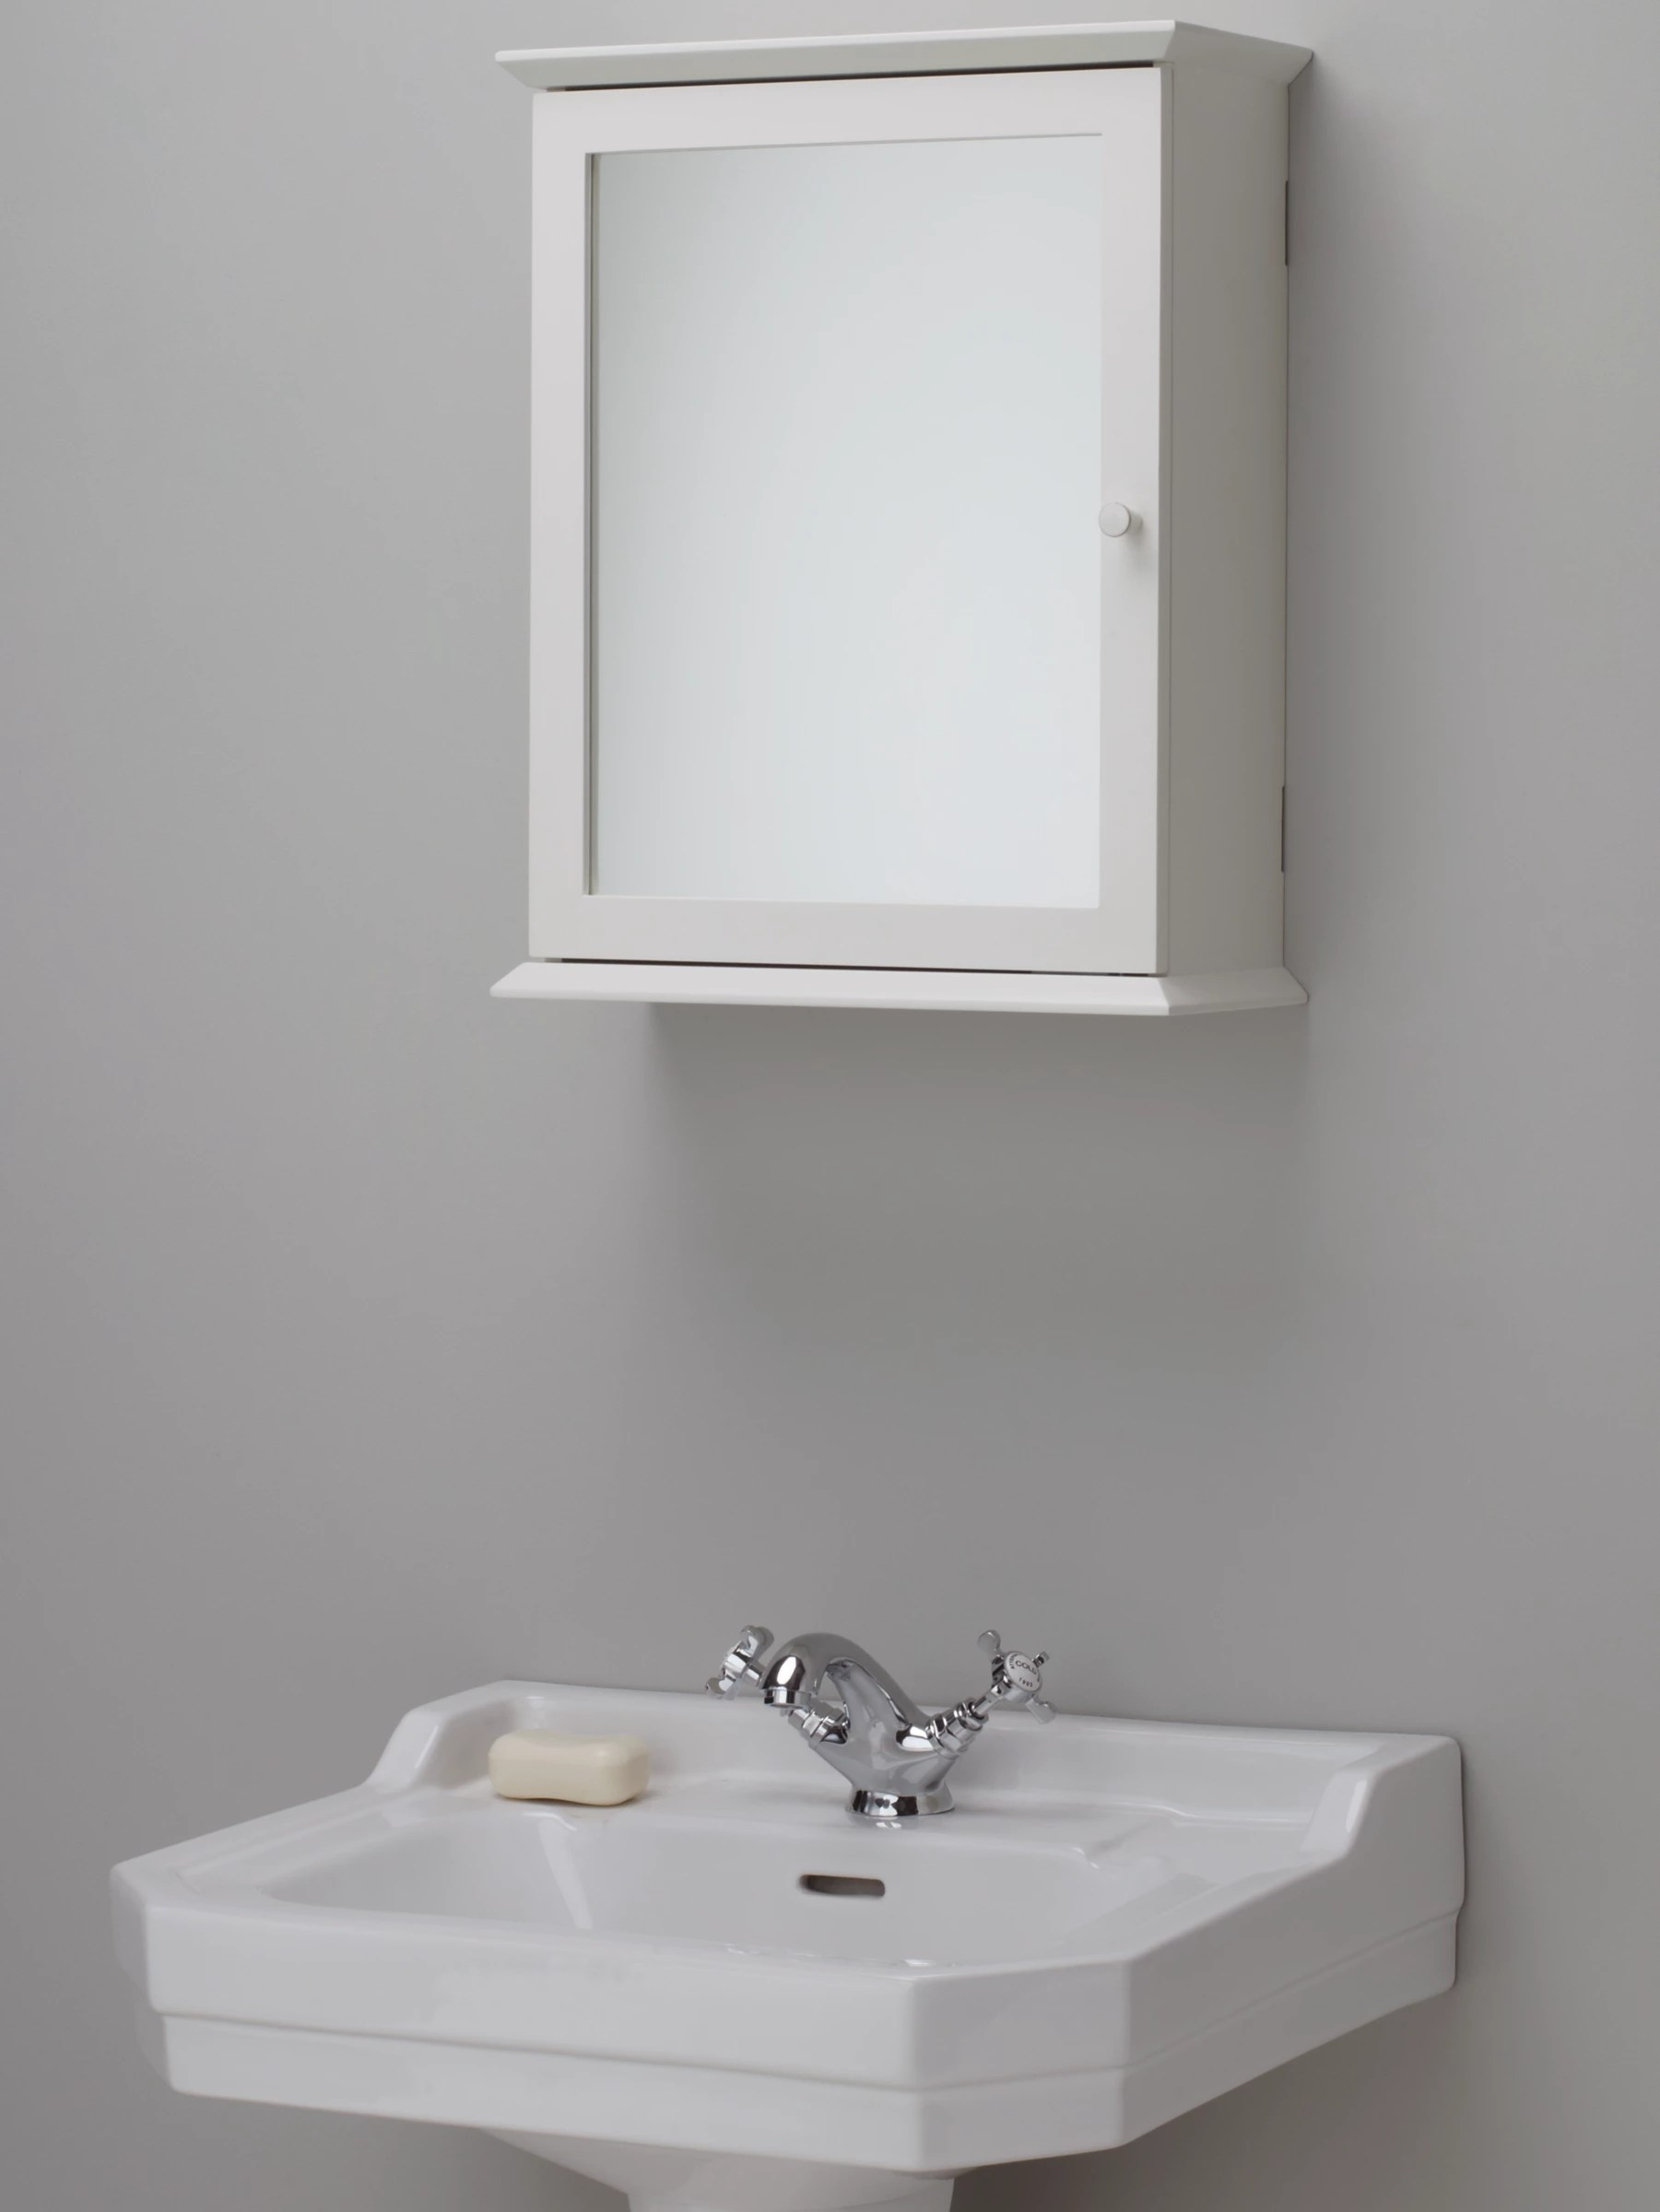 Mirrored Bathroom Cupboard John Lewis St Ives Single Mirrored Bathroom Cabinet At